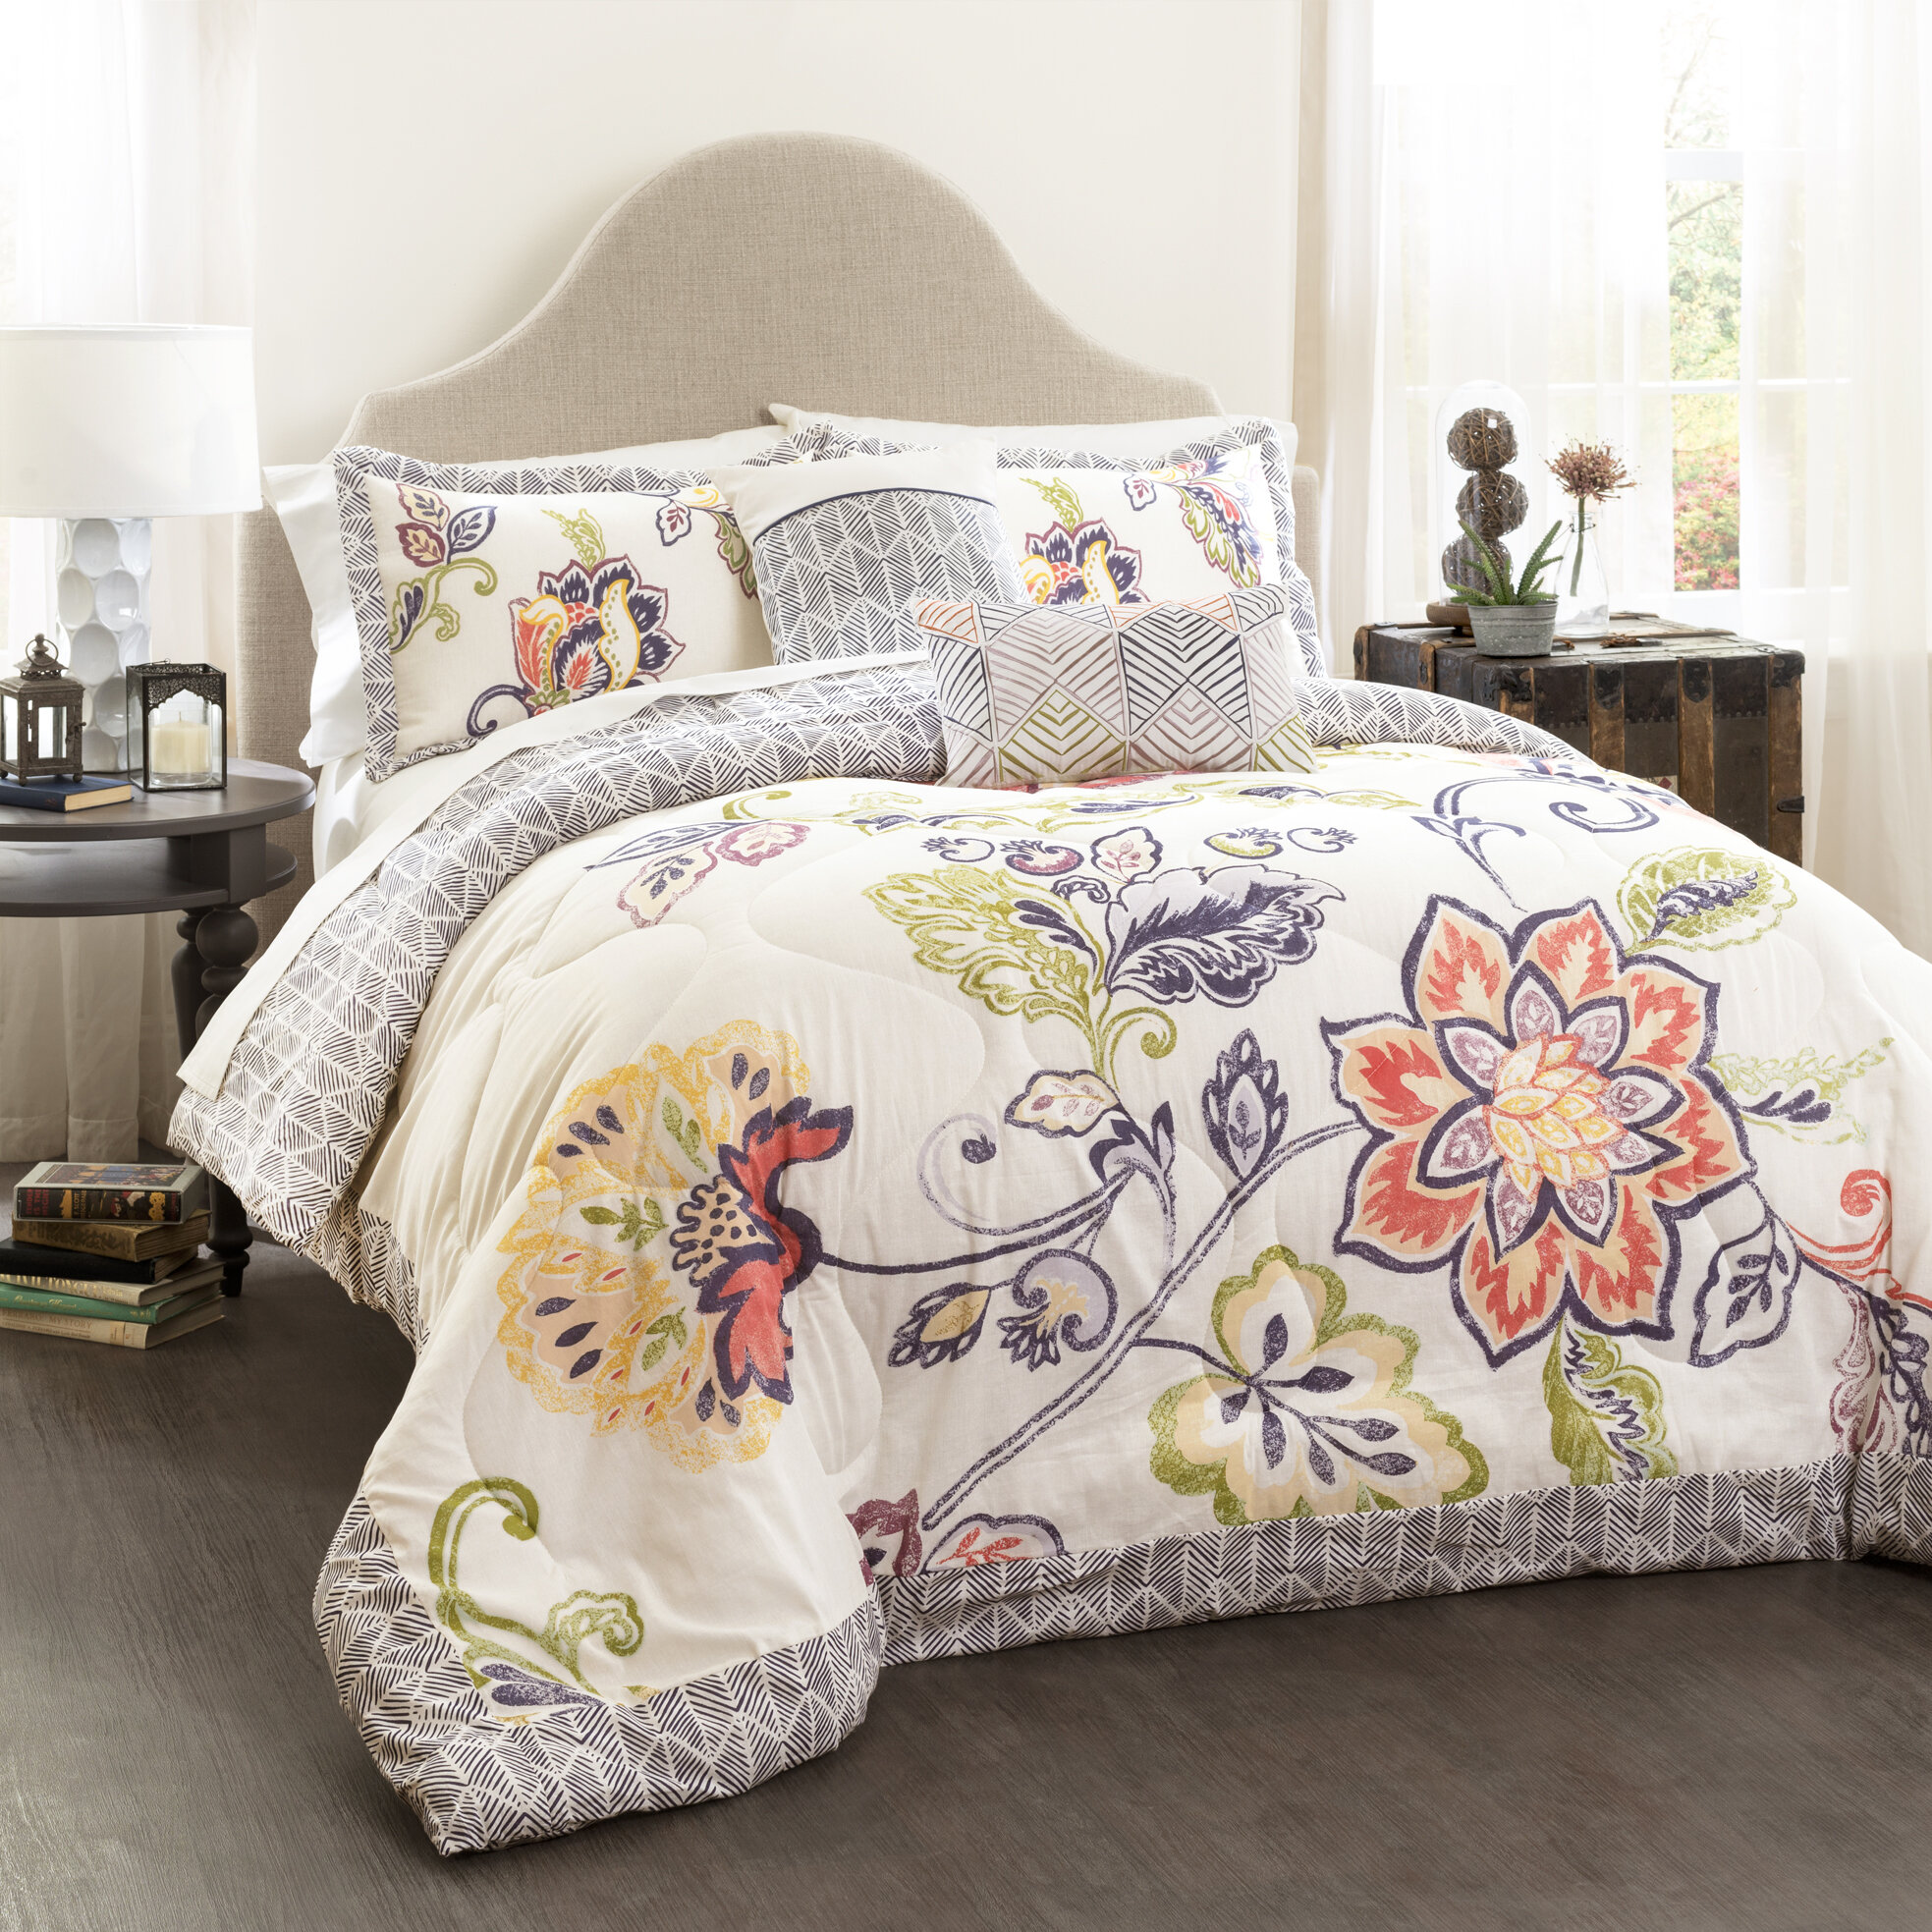 click queen to cover alternative p save welspun down comforter white expand in full hygrosoft